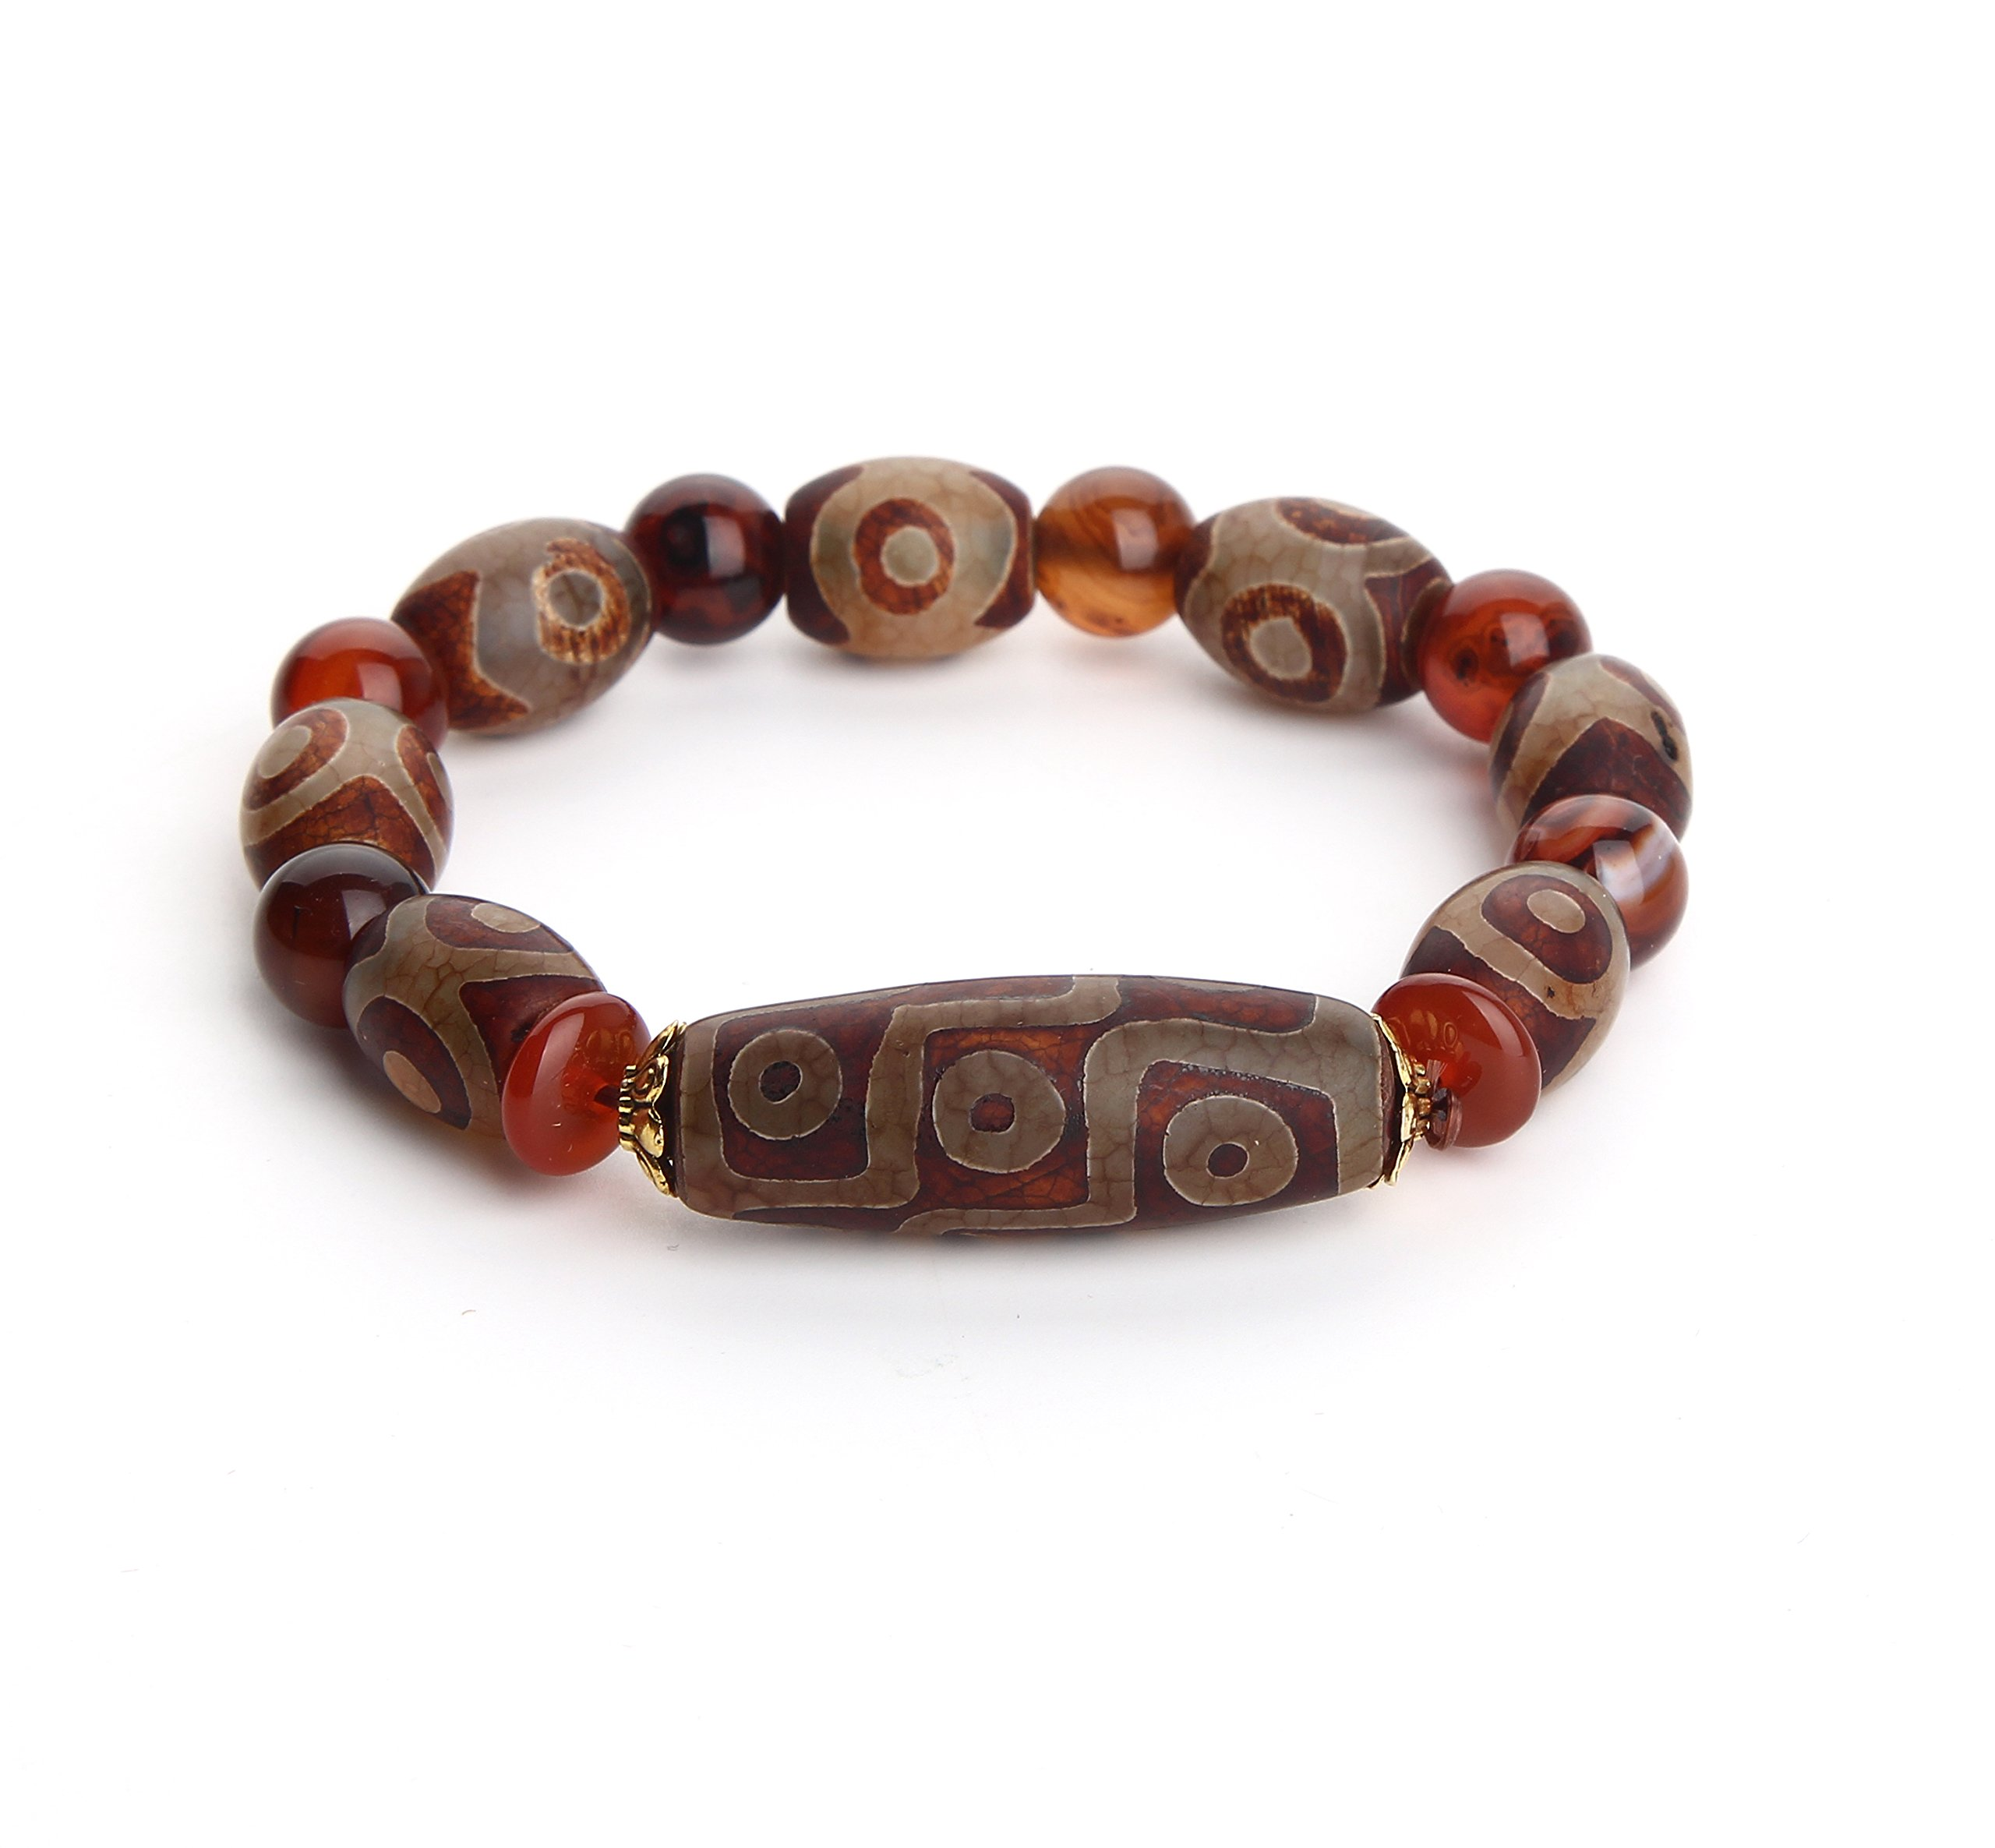 Wenmily Feng Shui Tibetan Dzi Bead Protective Amulet Bracelet, Attract Wealth and Good Luck, Deluxe Gift Box Included by Wenmily